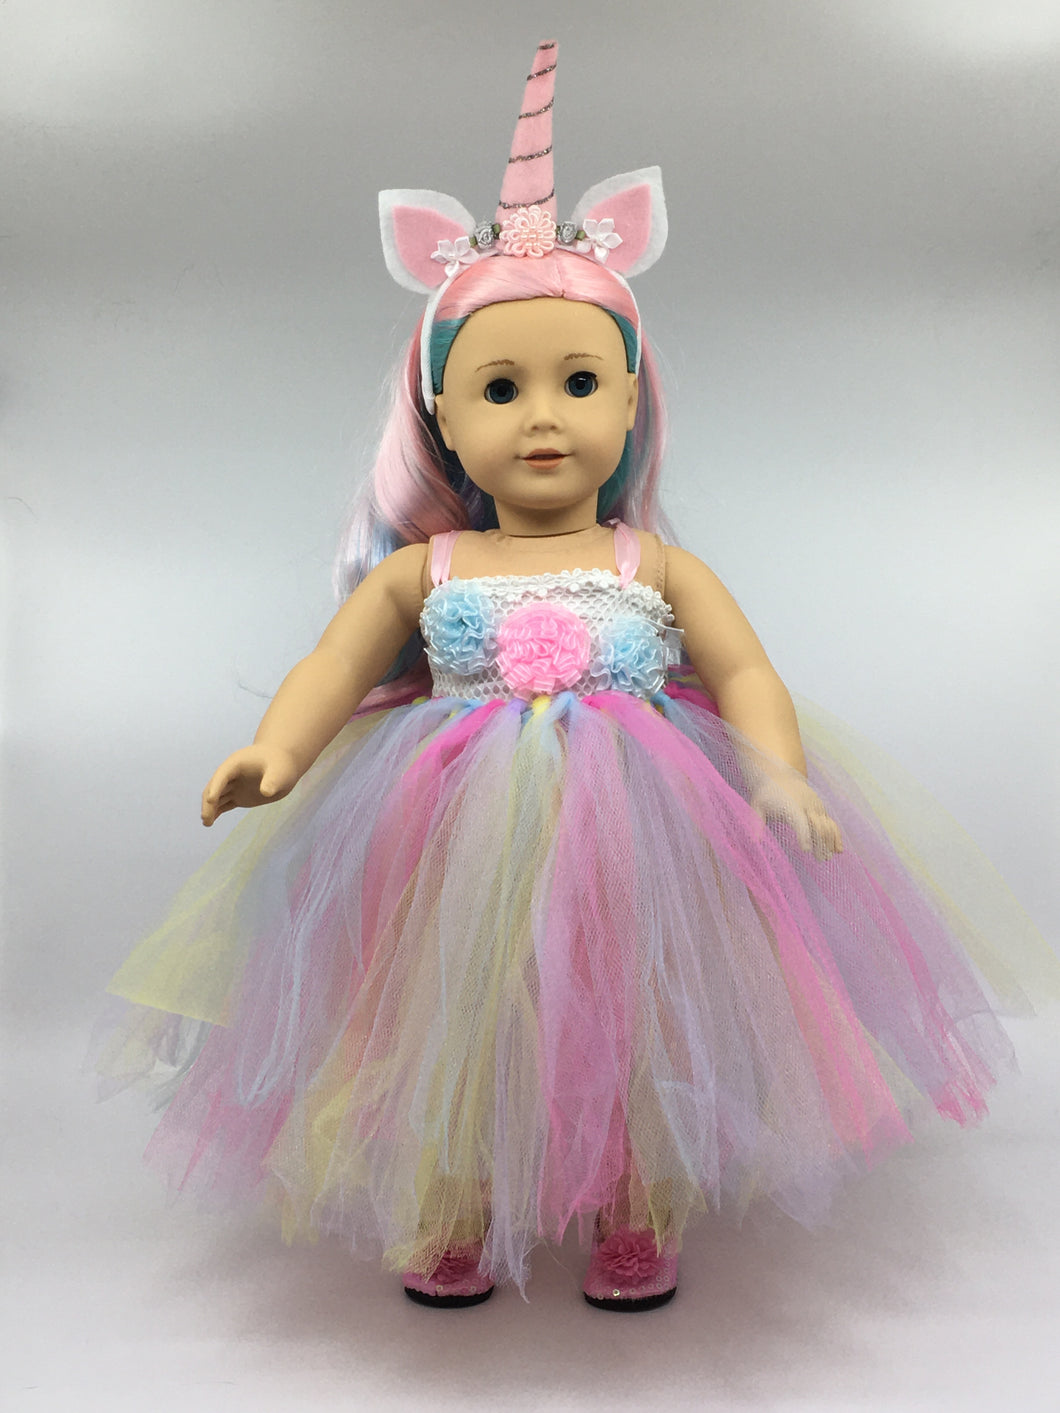 Unicorn Tulle Doll Outfit and Headband